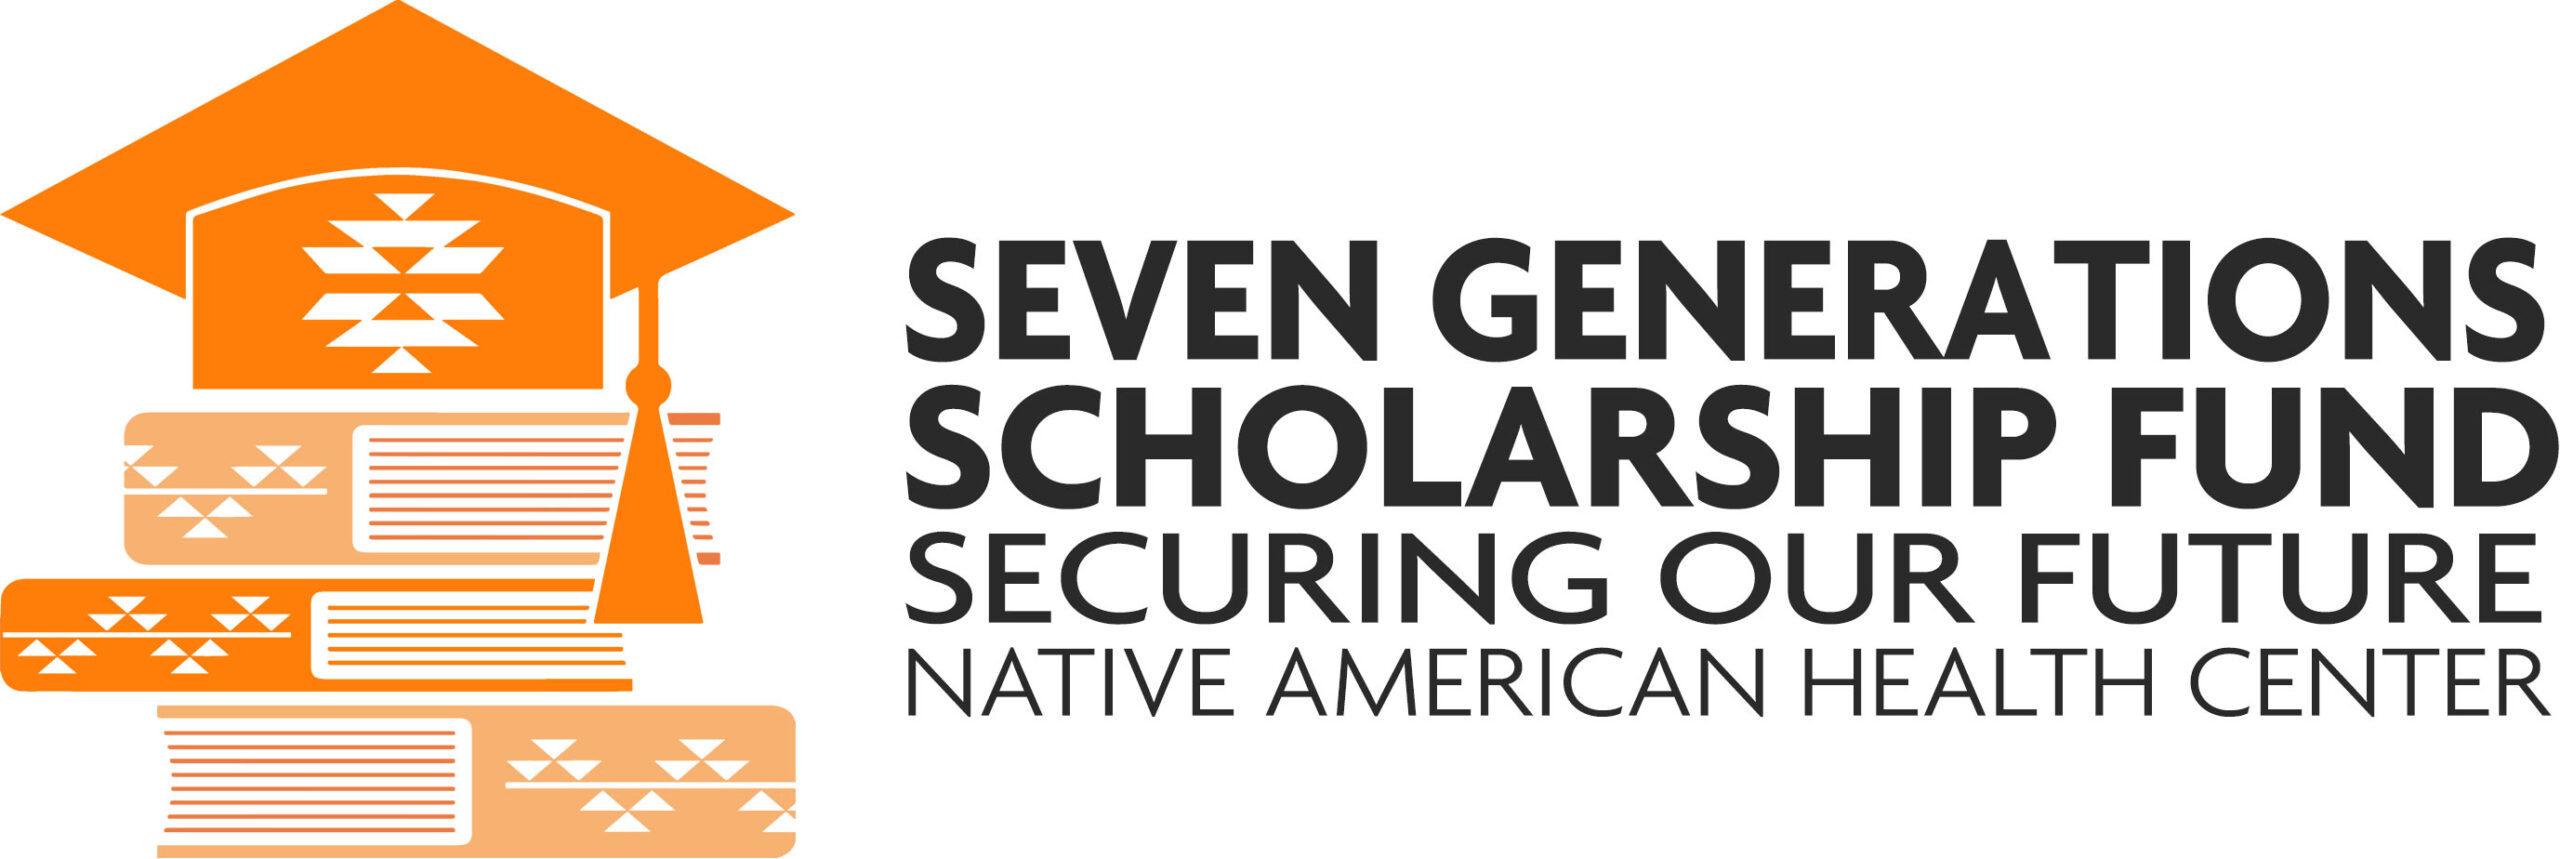 Seven Generations Scholarship Fund logo